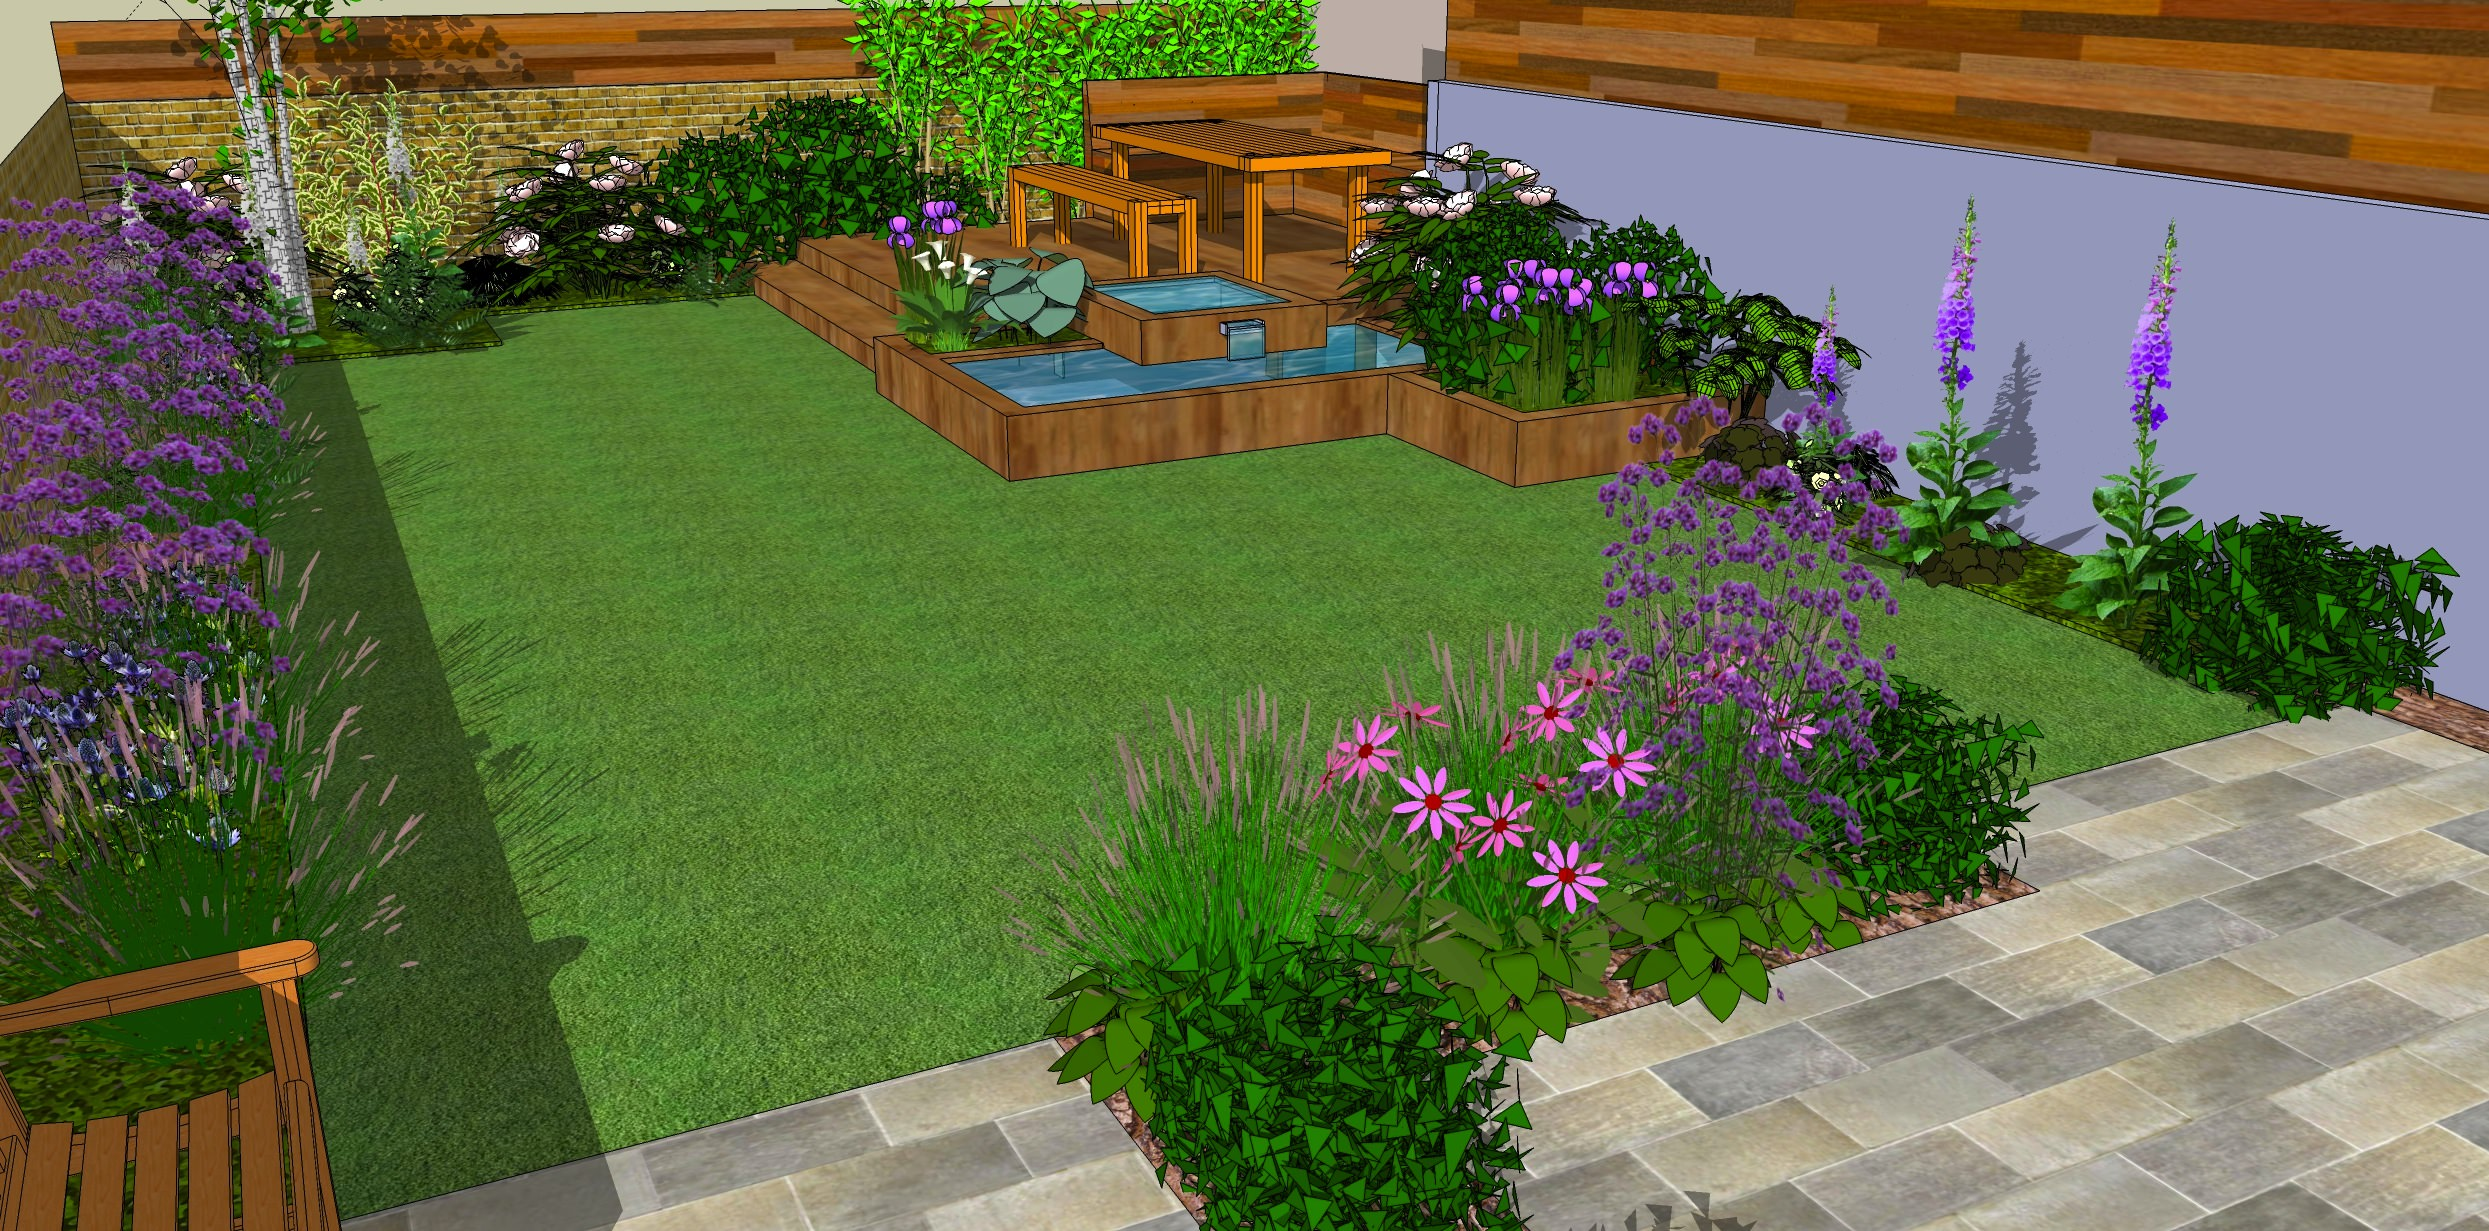 garden design with low maintenance garden designs garden club london with landscape design ideas from gardenclublondon